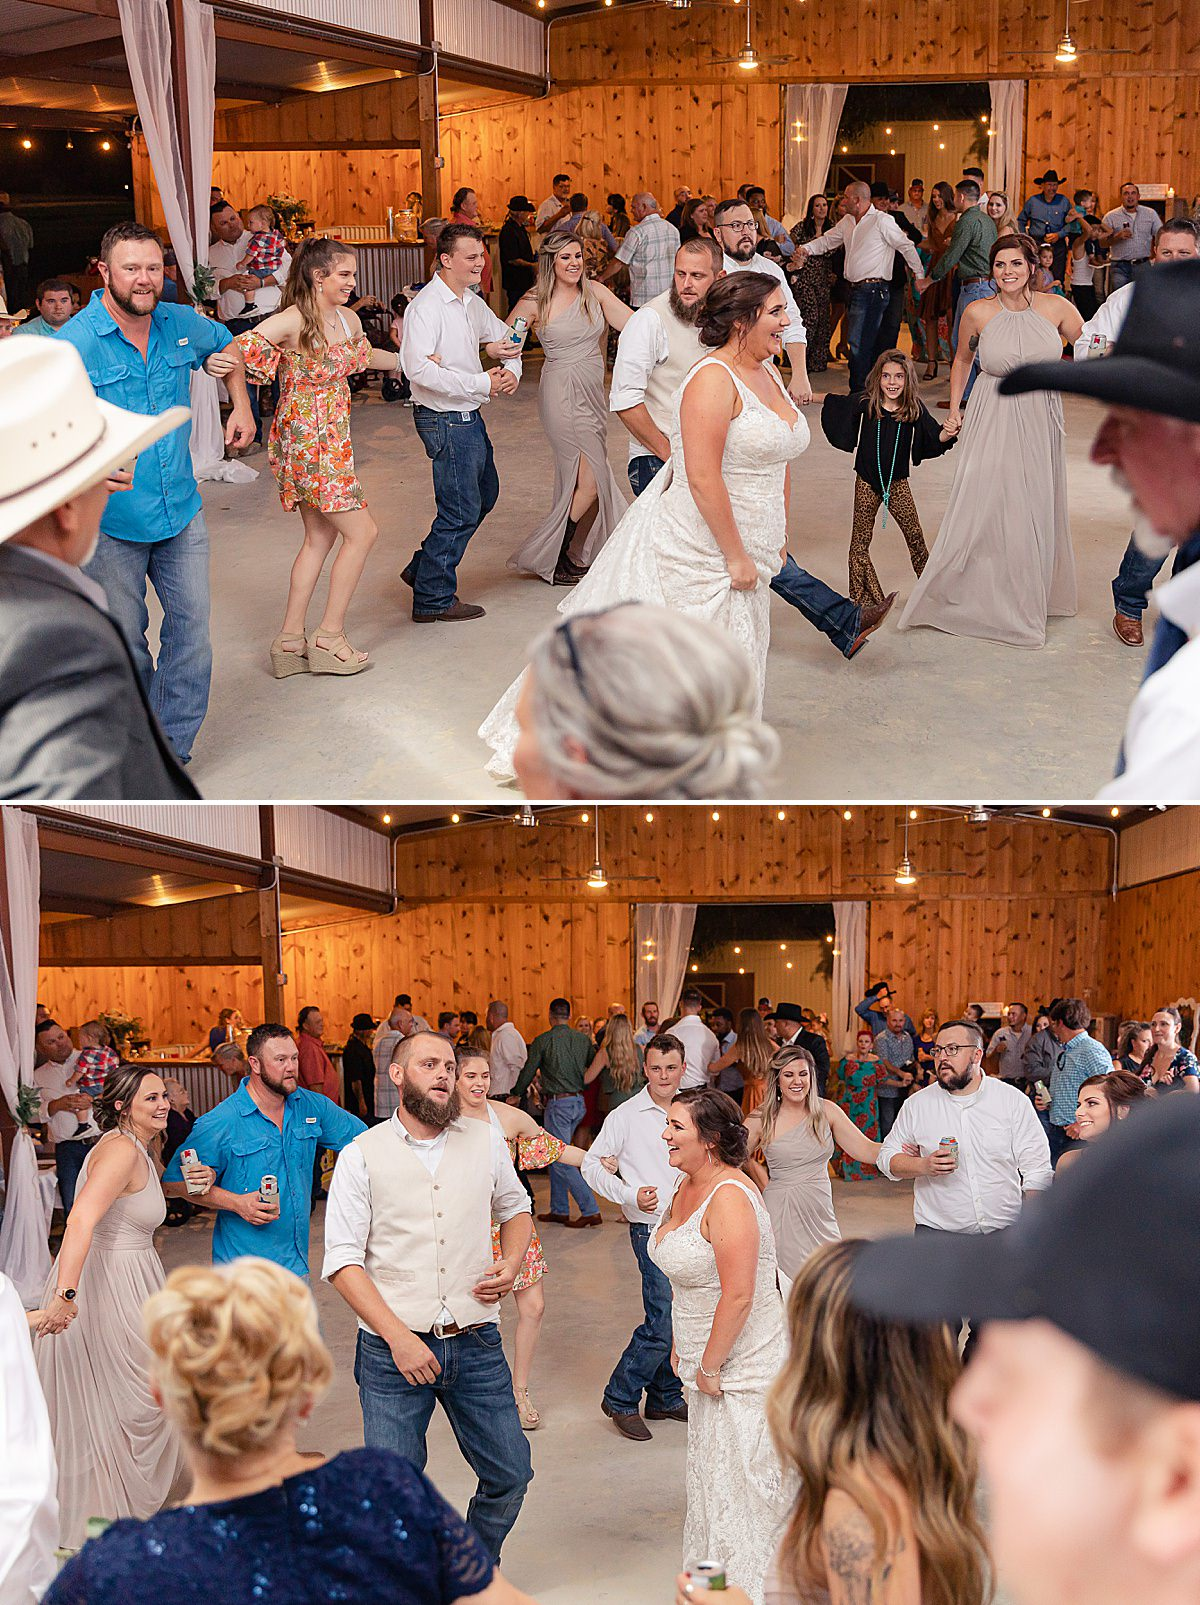 Rustic-Texas-Wedding-Hollow-Creek-Ranch-Carly-Barton-Photography_0019.jpg